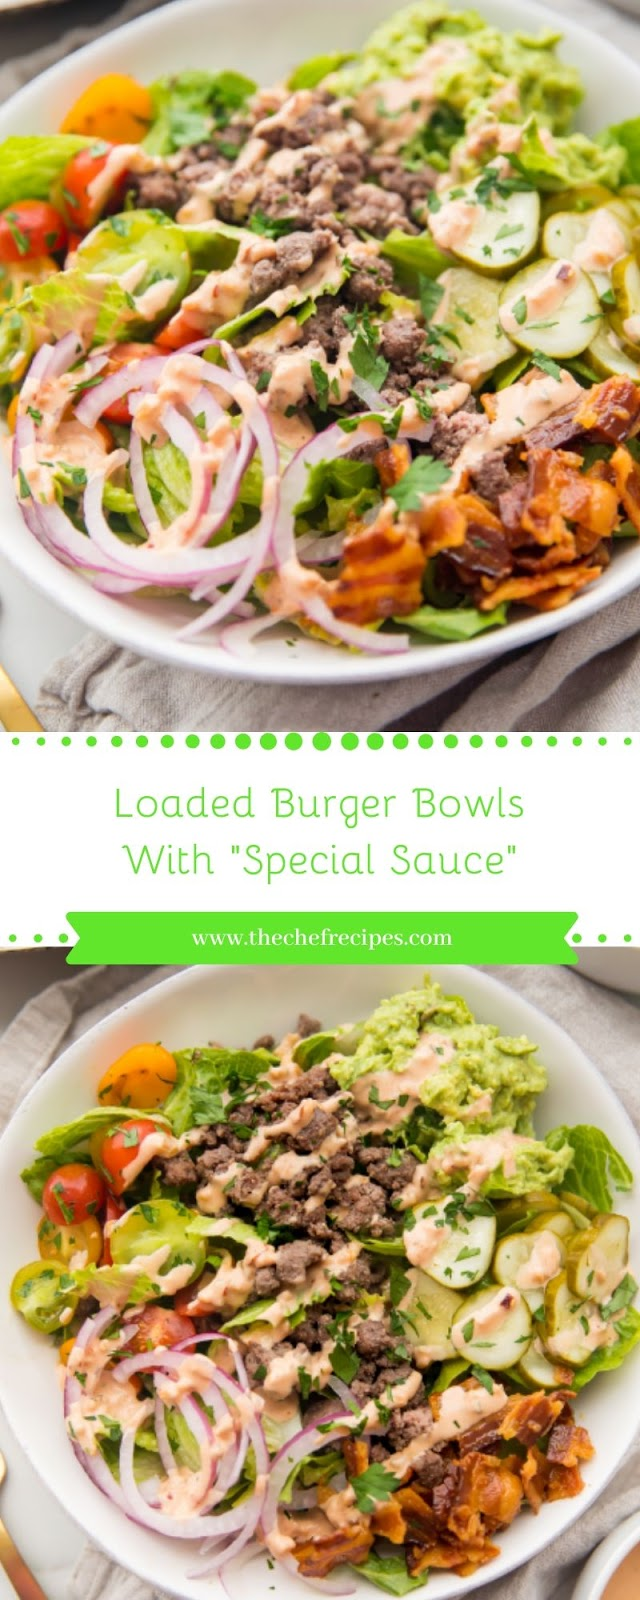 "Loaded Burger Bowls With ""Special Sauce"""